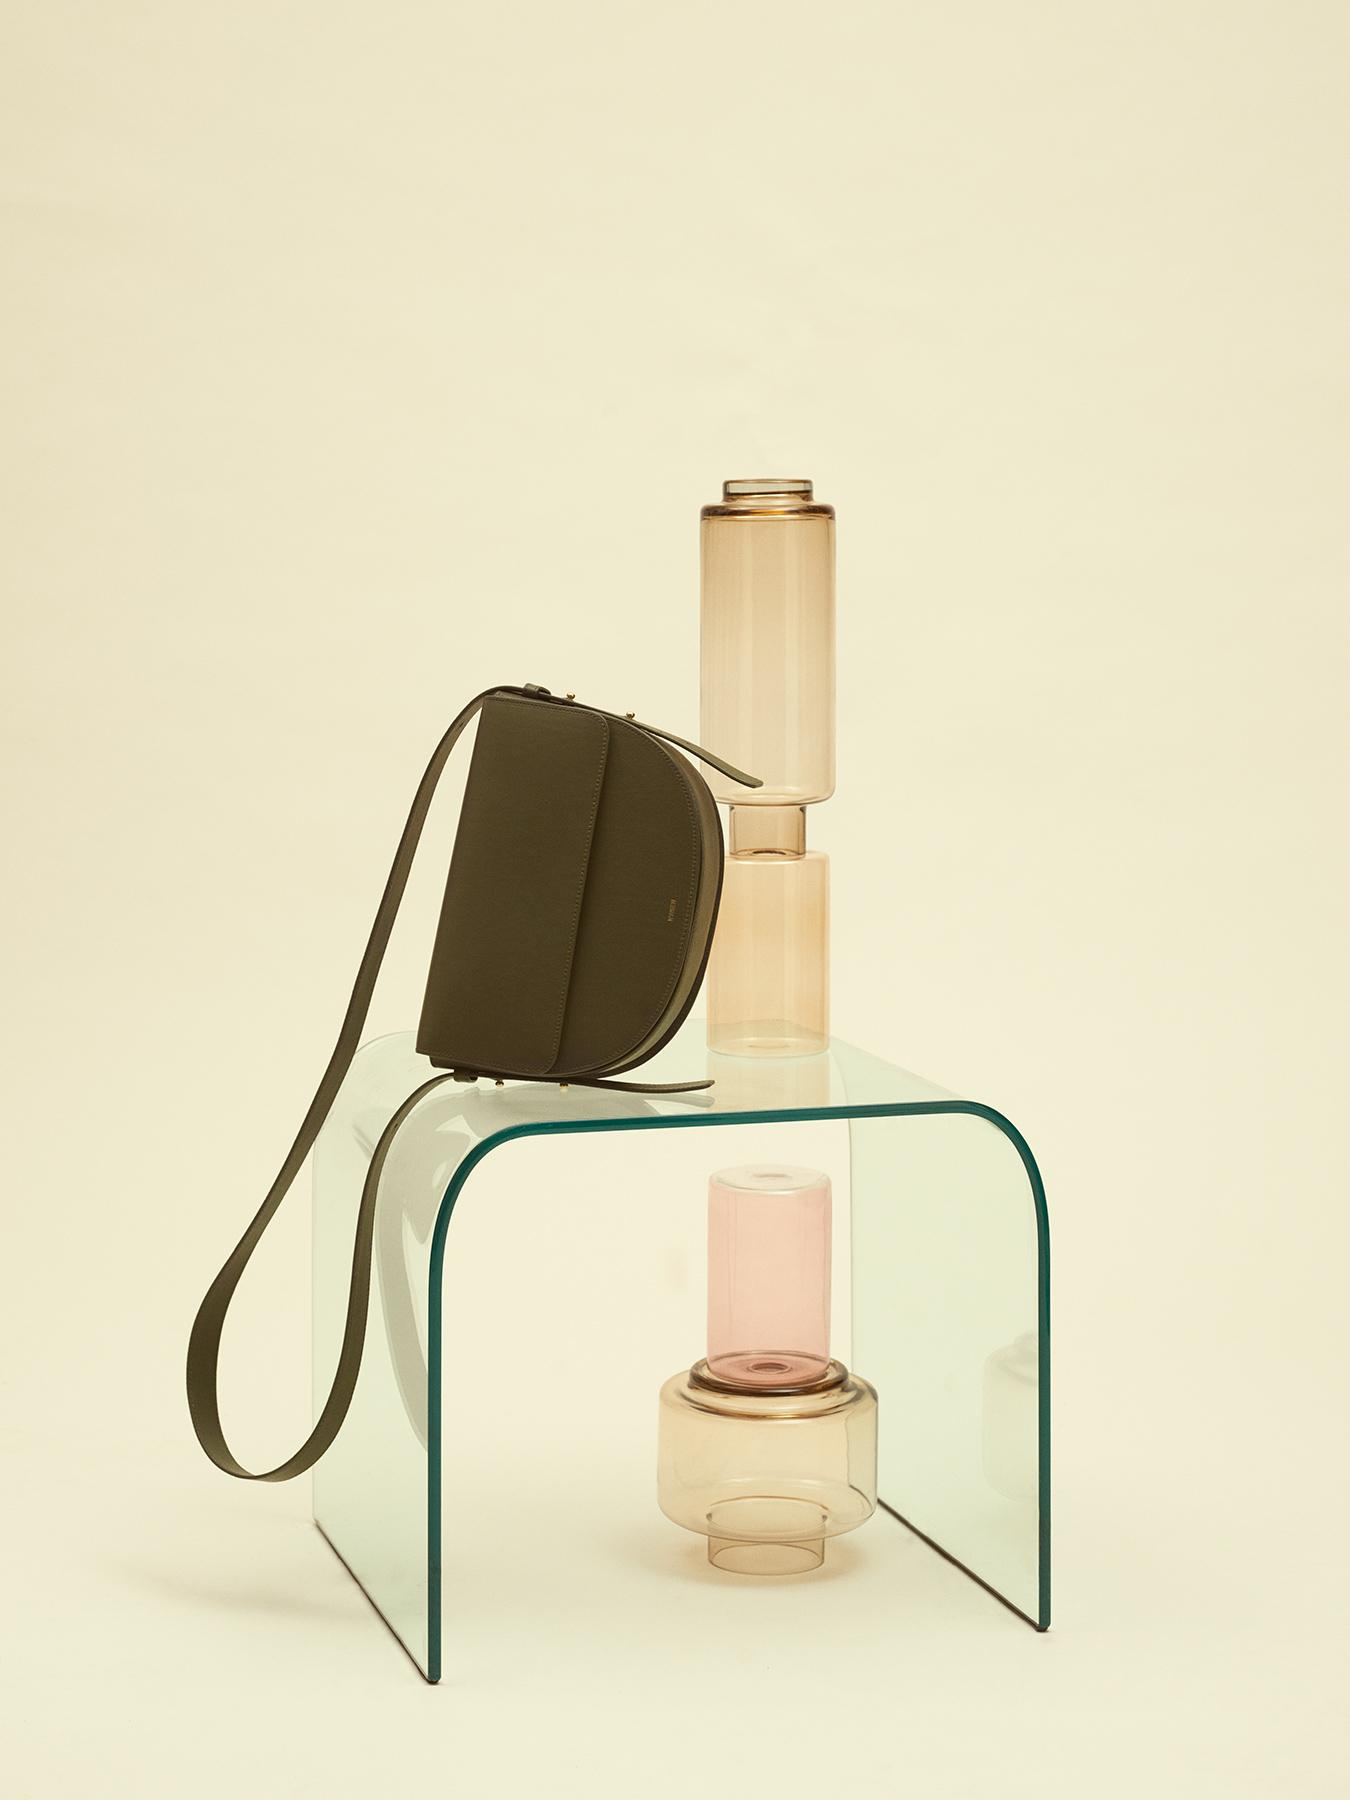 Green leather bag lies on a glass table